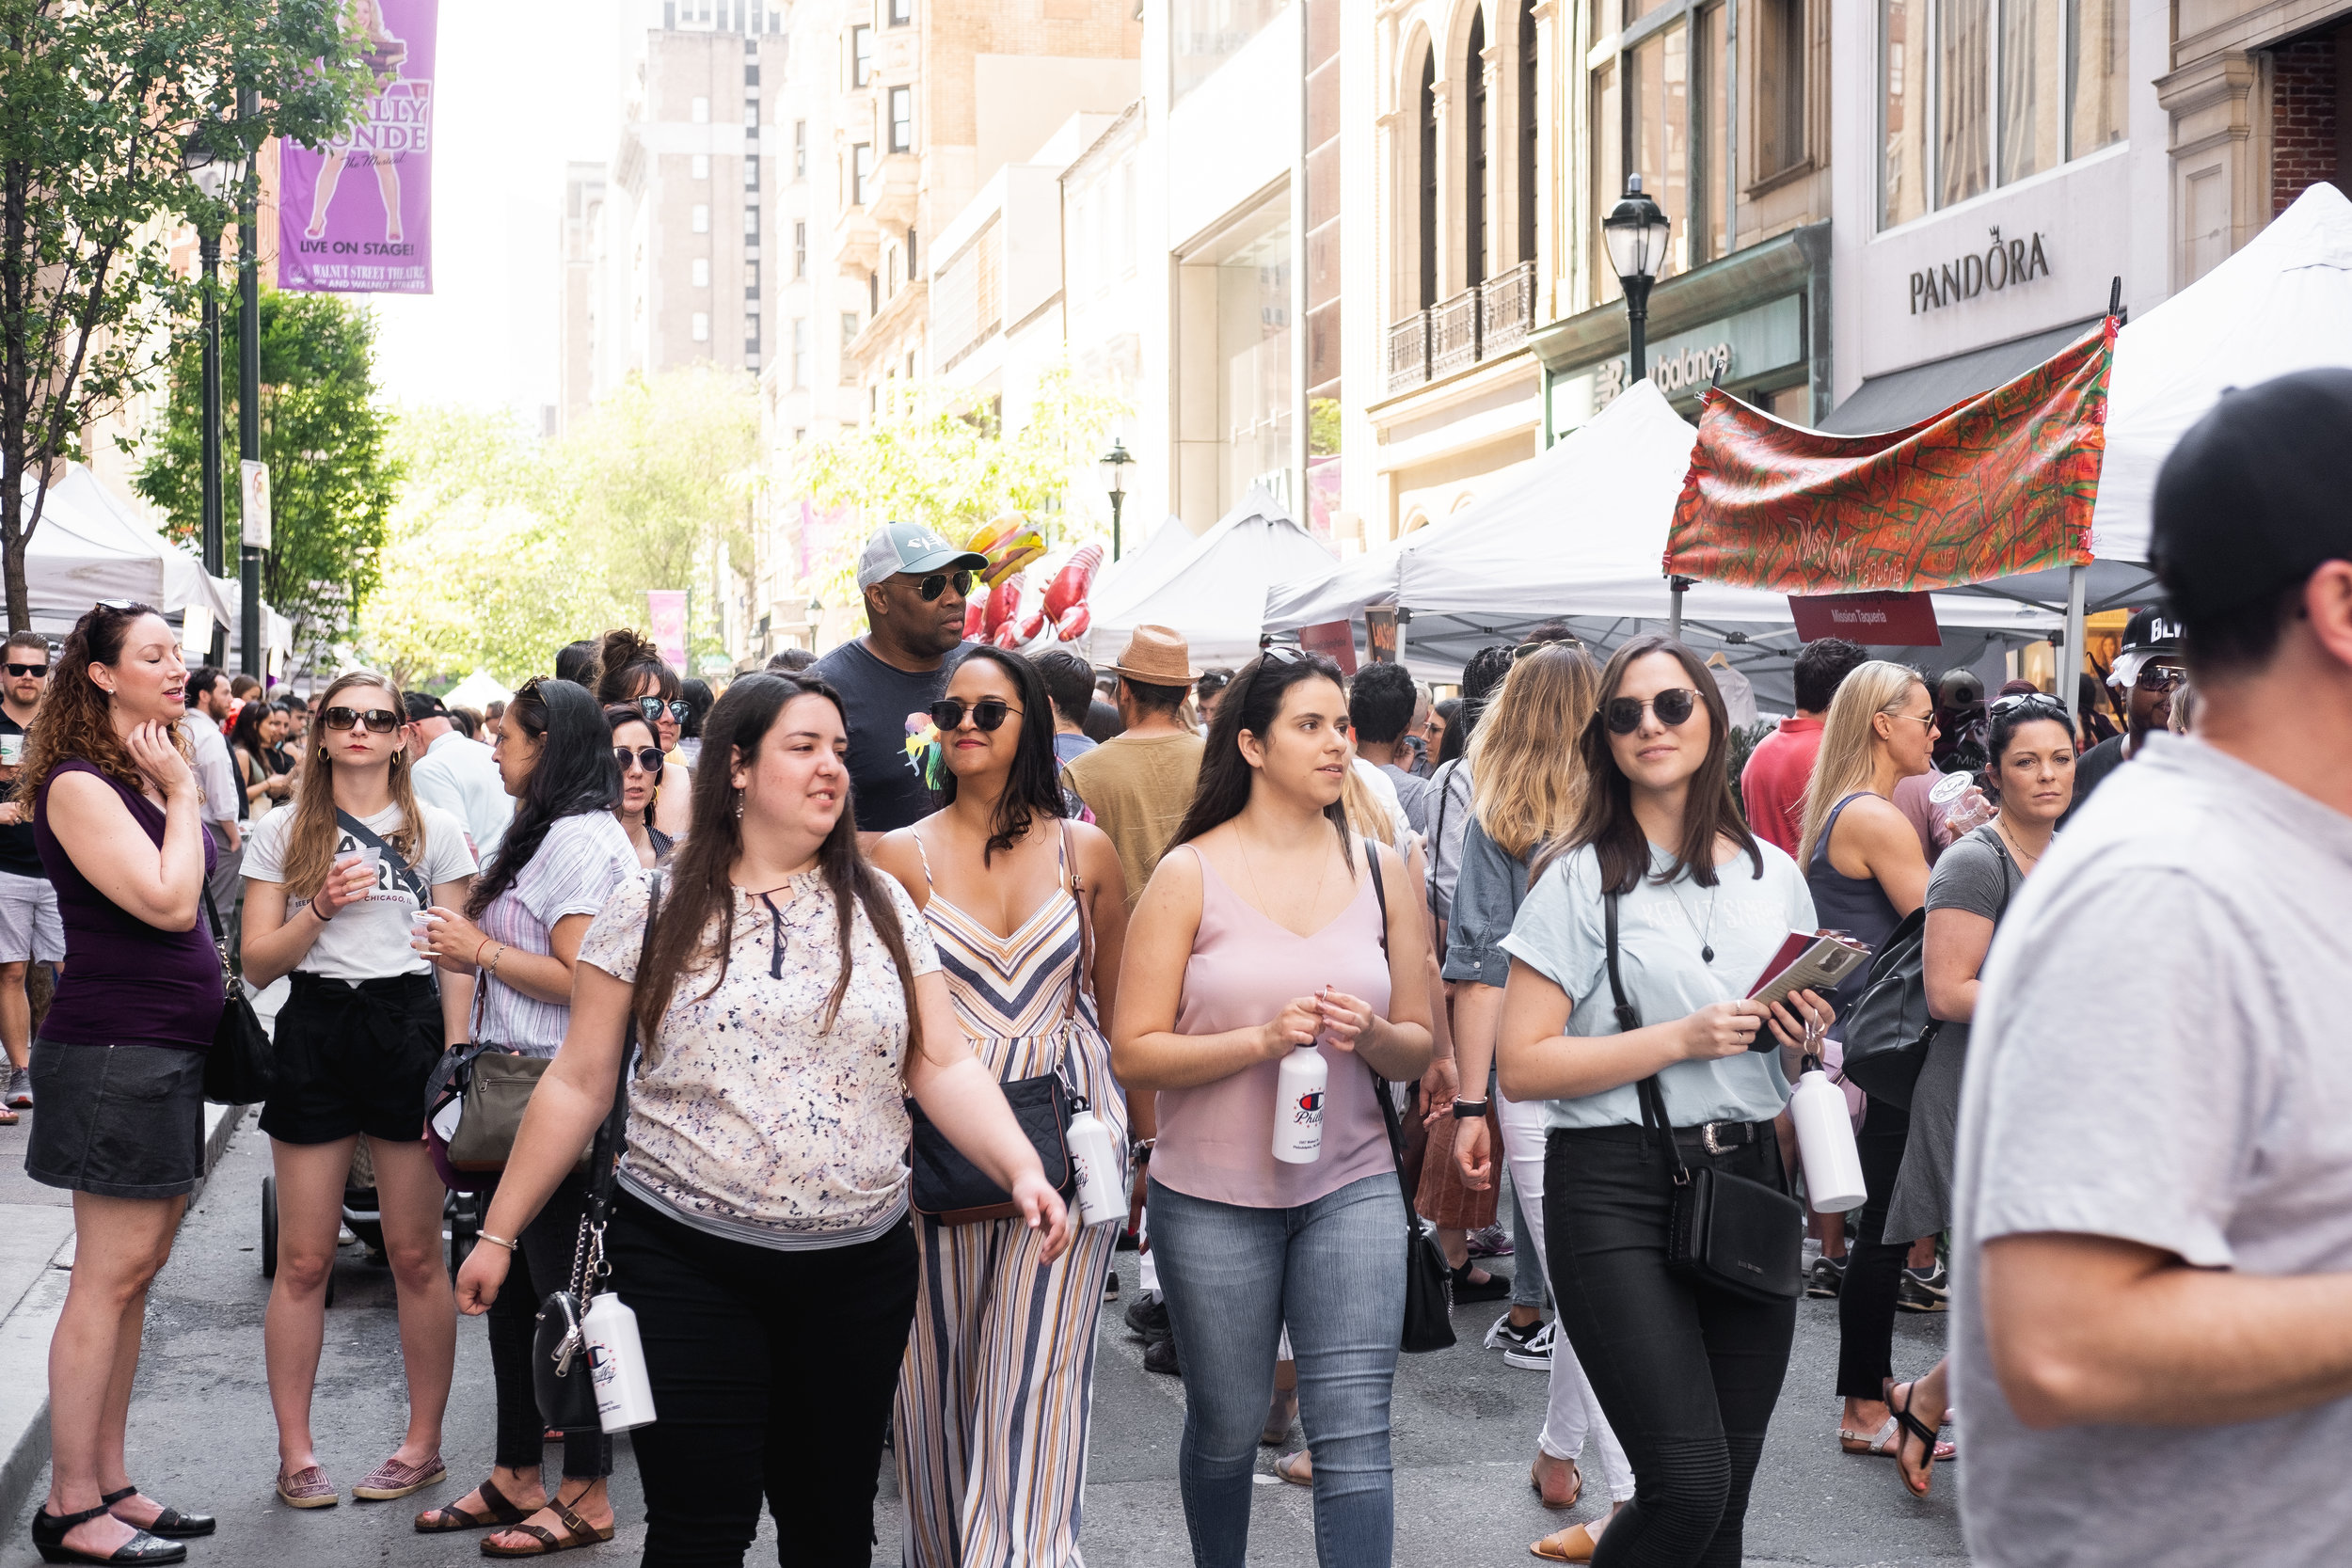 2019_RITTENHOUSE ROW FEST_EVENTS_THE PHILLY CHECKLIST-10.jpg